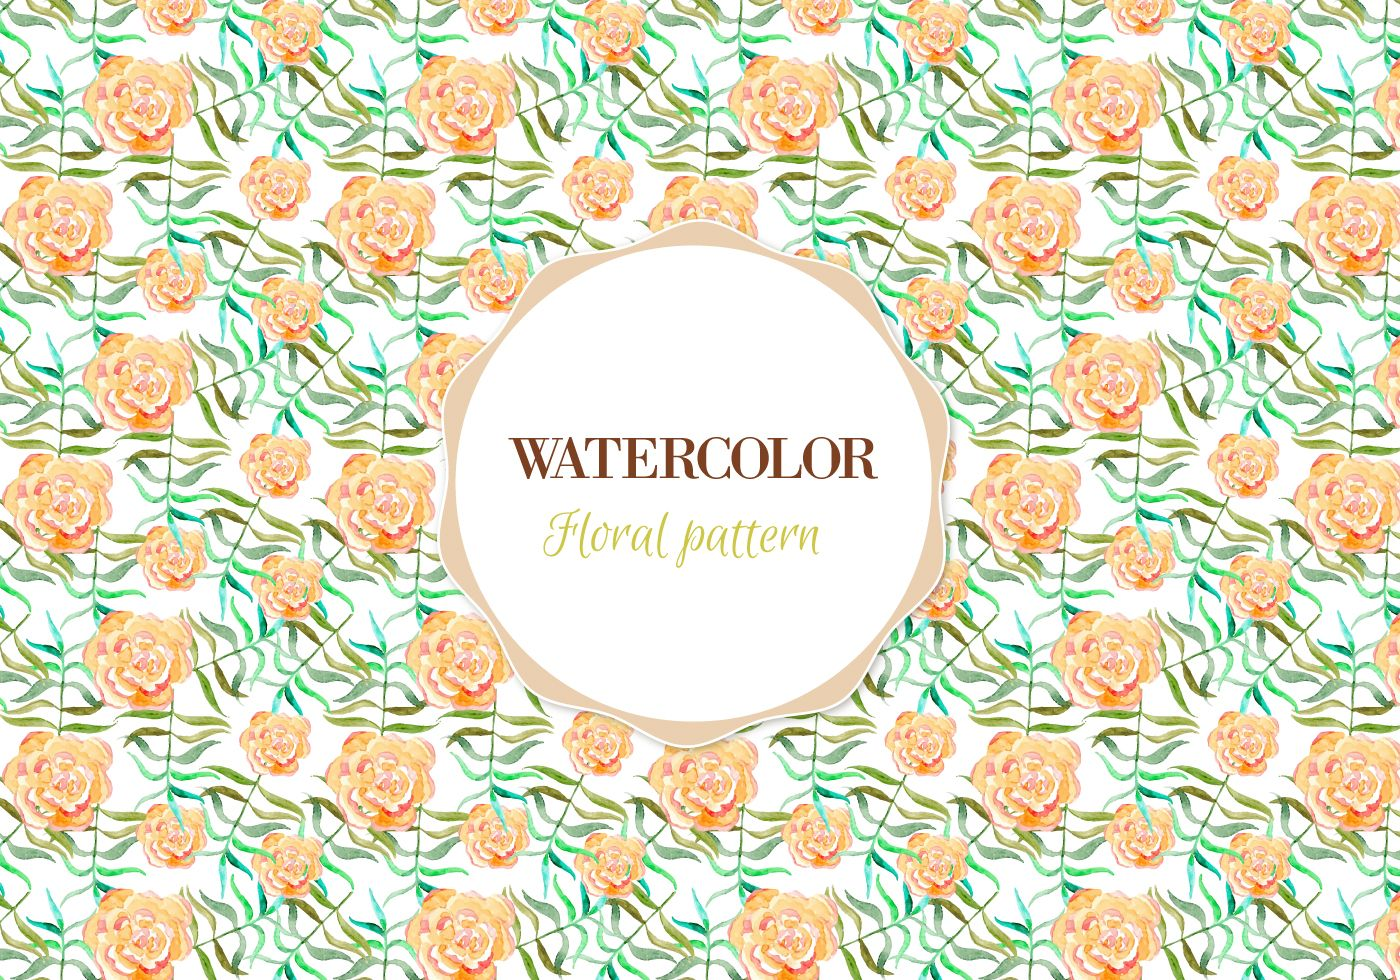 Free Vector Watercolor Floral Pattern Download Free